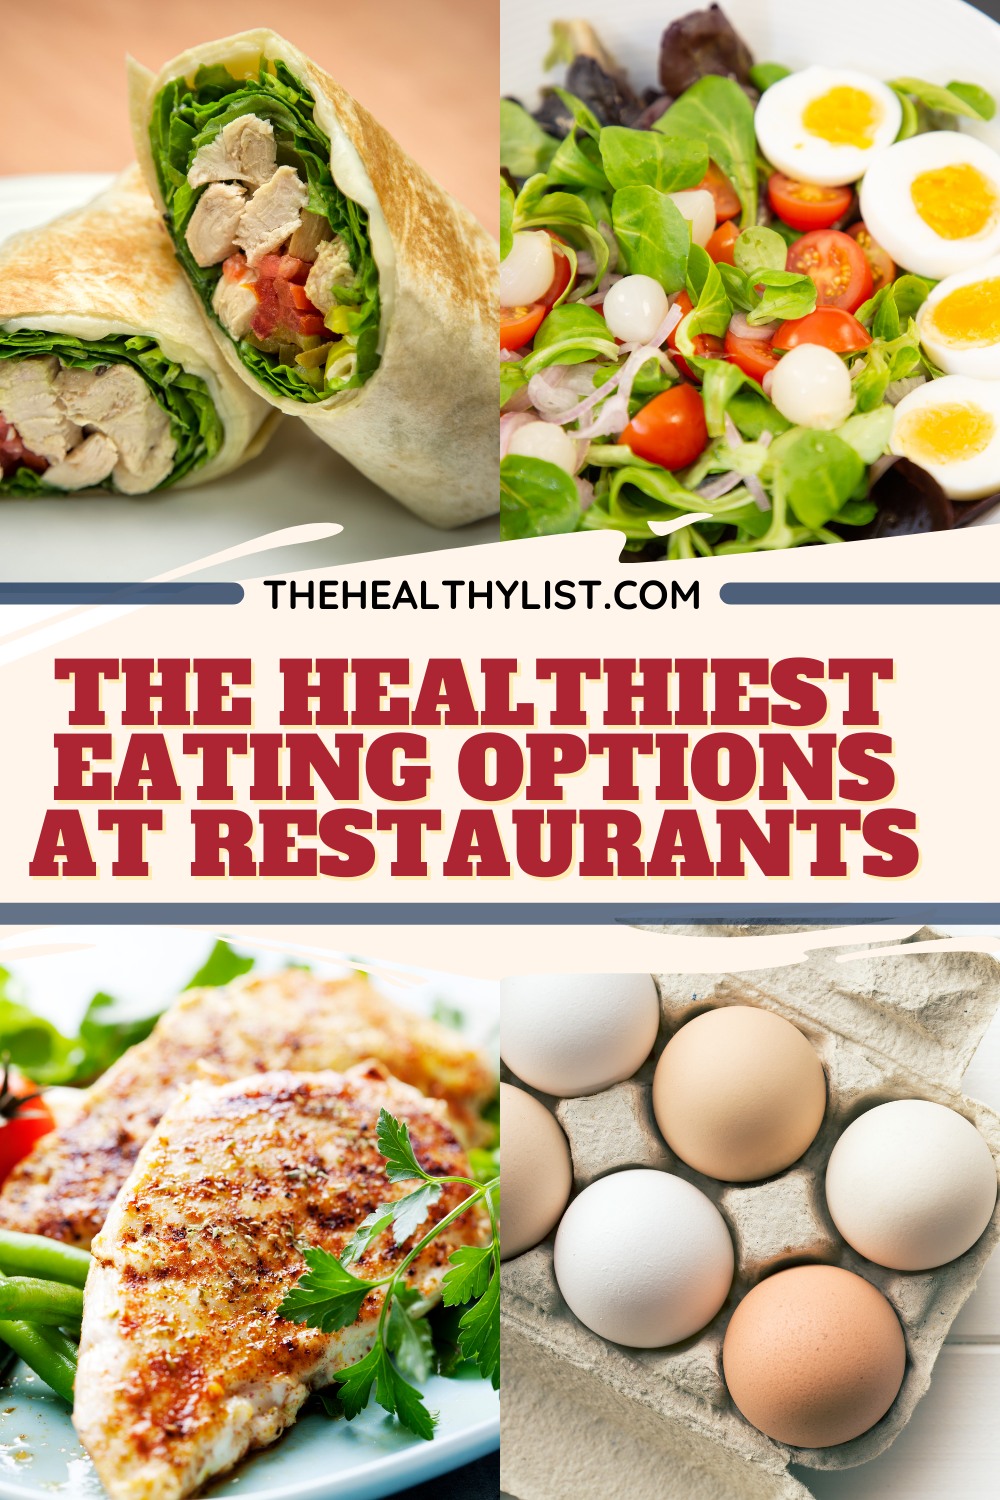 The Healthiest Eating Options at Restaurants